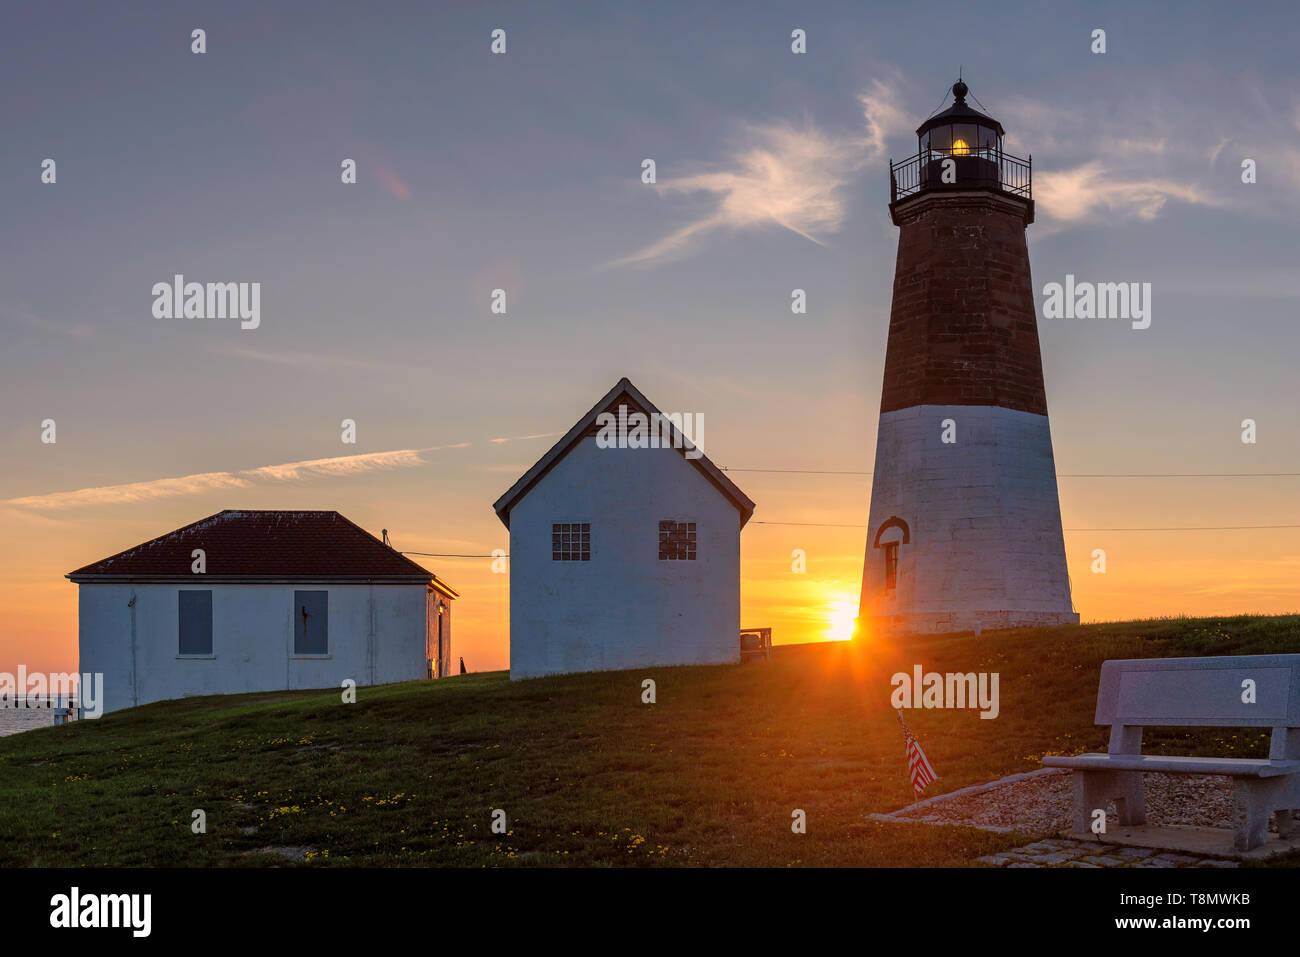 The Point Judith light lighthouse near Narragansett, Rhode Island, USA. - Stock Image